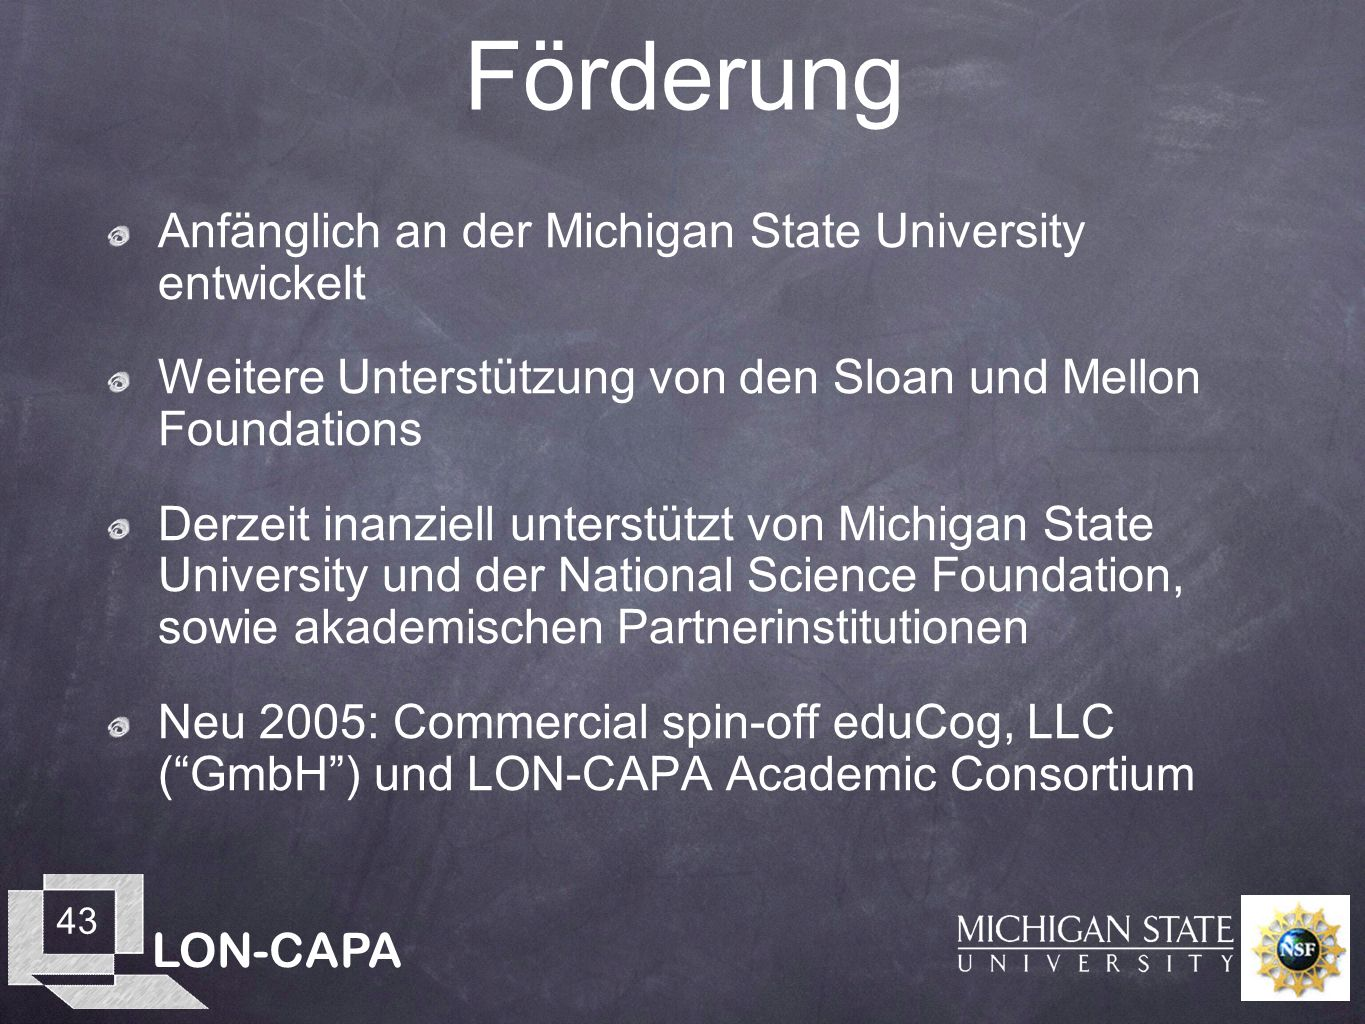 LON-CAPA 43 Förderung Anfänglich an der Michigan State University entwickelt Weitere Unterstützung von den Sloan und Mellon Foundations Derzeit inanziell unterstützt von Michigan State University und der National Science Foundation, sowie akademischen Partnerinstitutionen Neu 2005: Commercial spin-off eduCog, LLC (GmbH) und LON-CAPA Academic Consortium